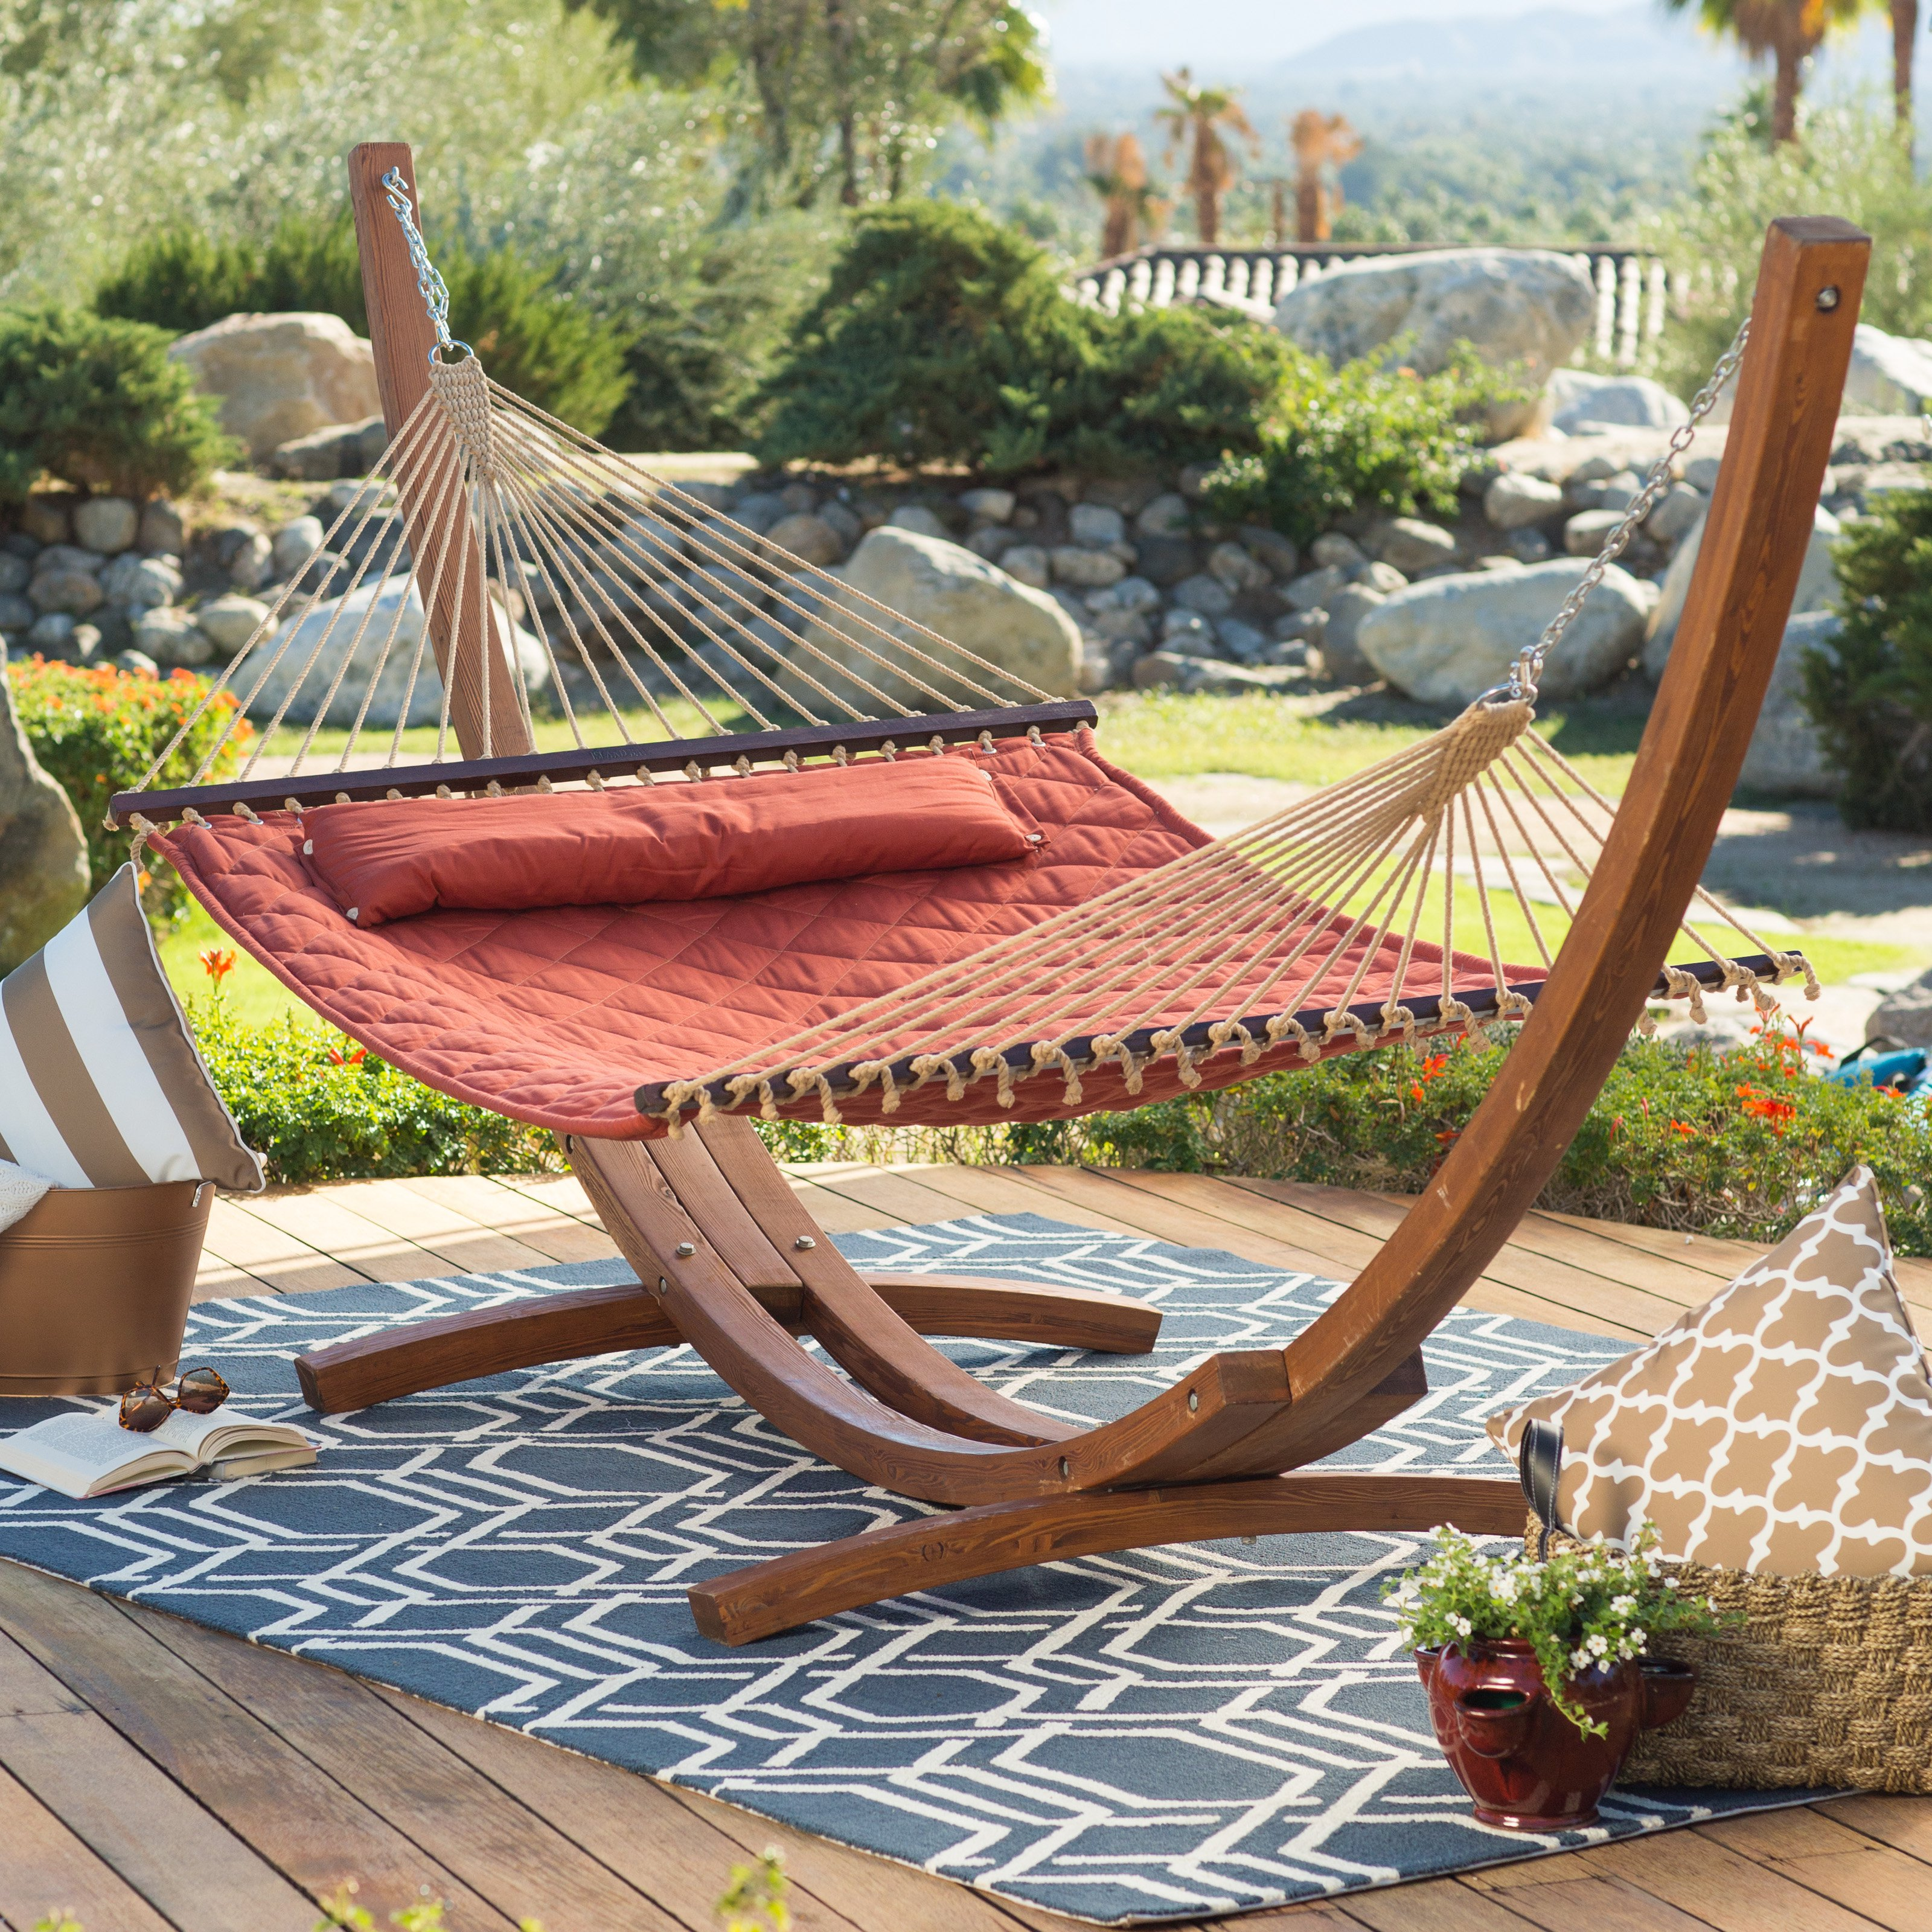 porch on wooden hammock swing inexpensive outdoor for money stand hanging covered patio swings your full chair spend the size well set garden bench of decorating